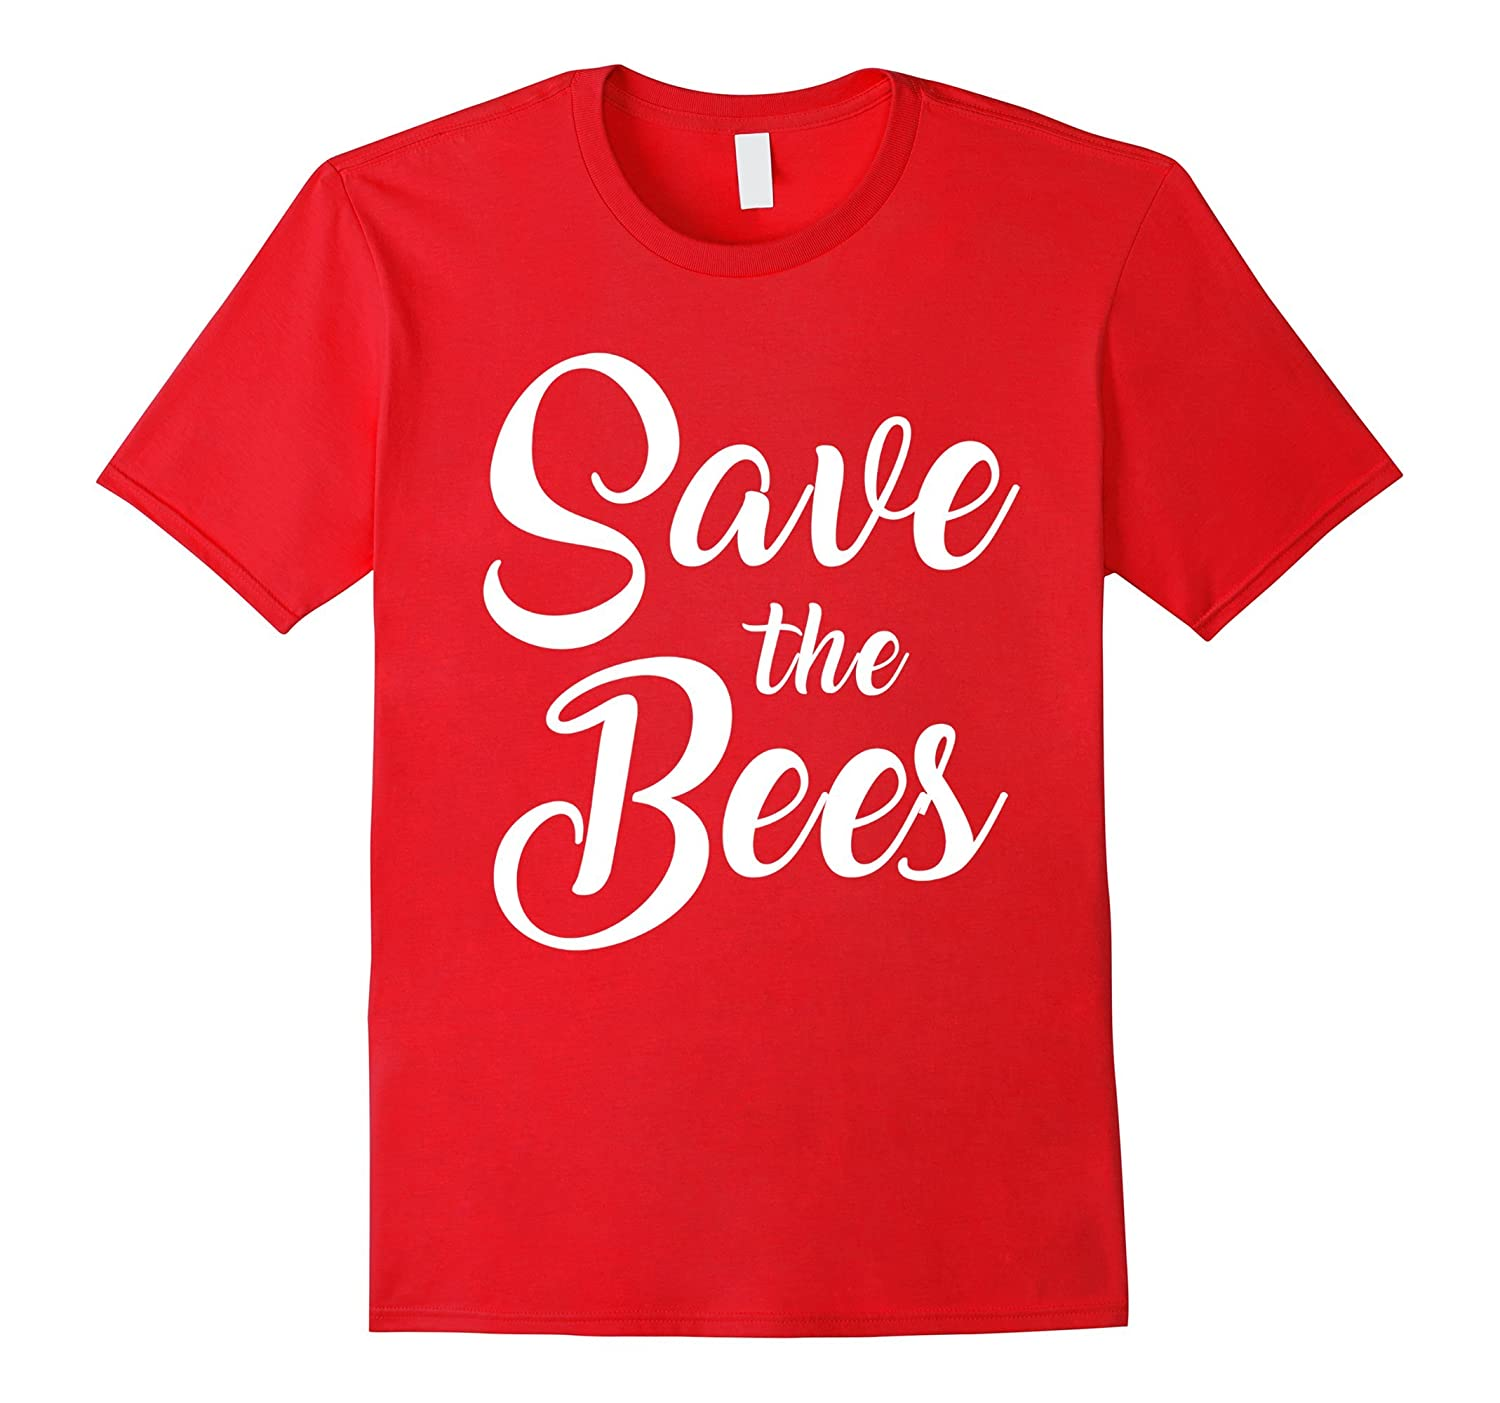 Bees T-shirt , Womens Save the Bees Shirt-Art